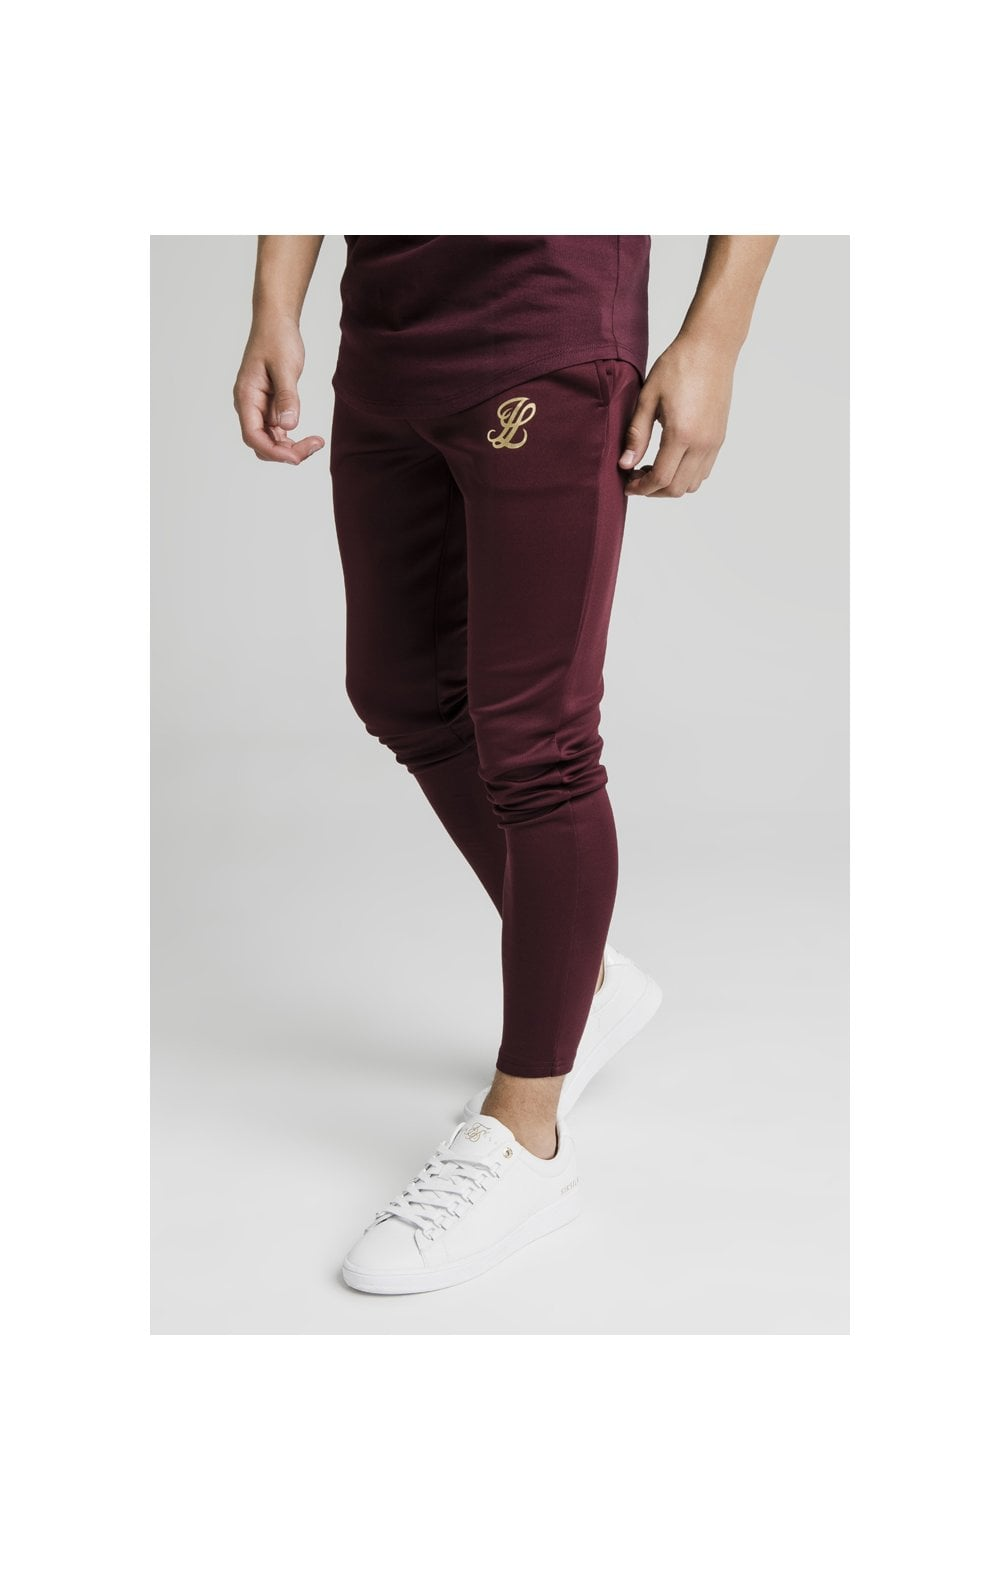 Load image into Gallery viewer, Illusive London Agility Track Pants - Burgundy